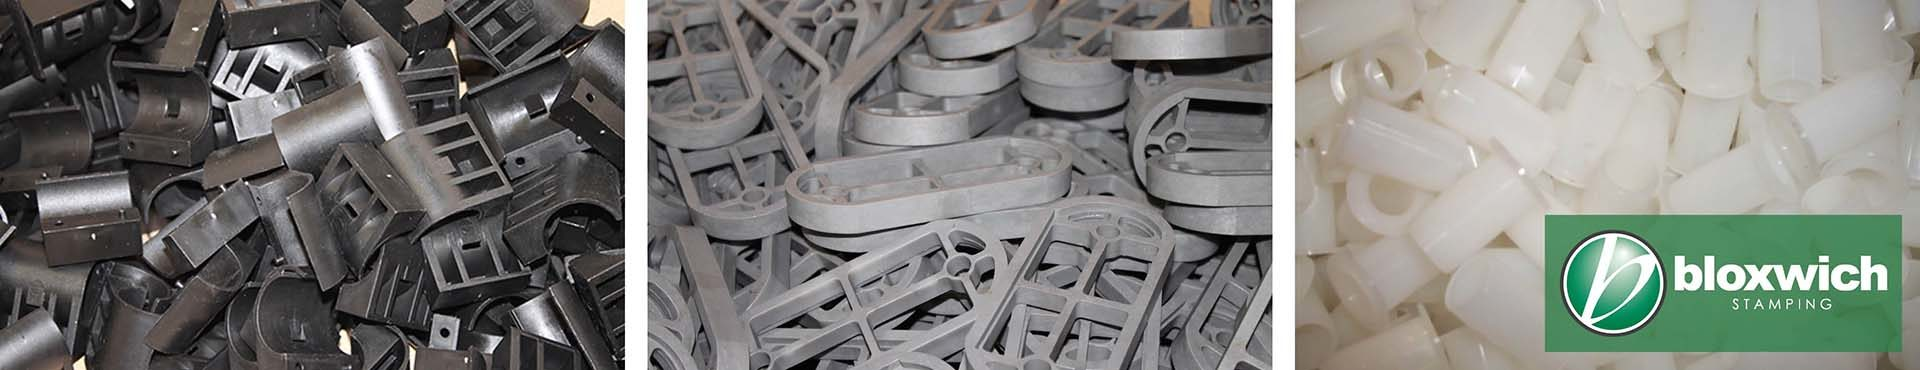 Bloxwich Stamping injection moulded parts